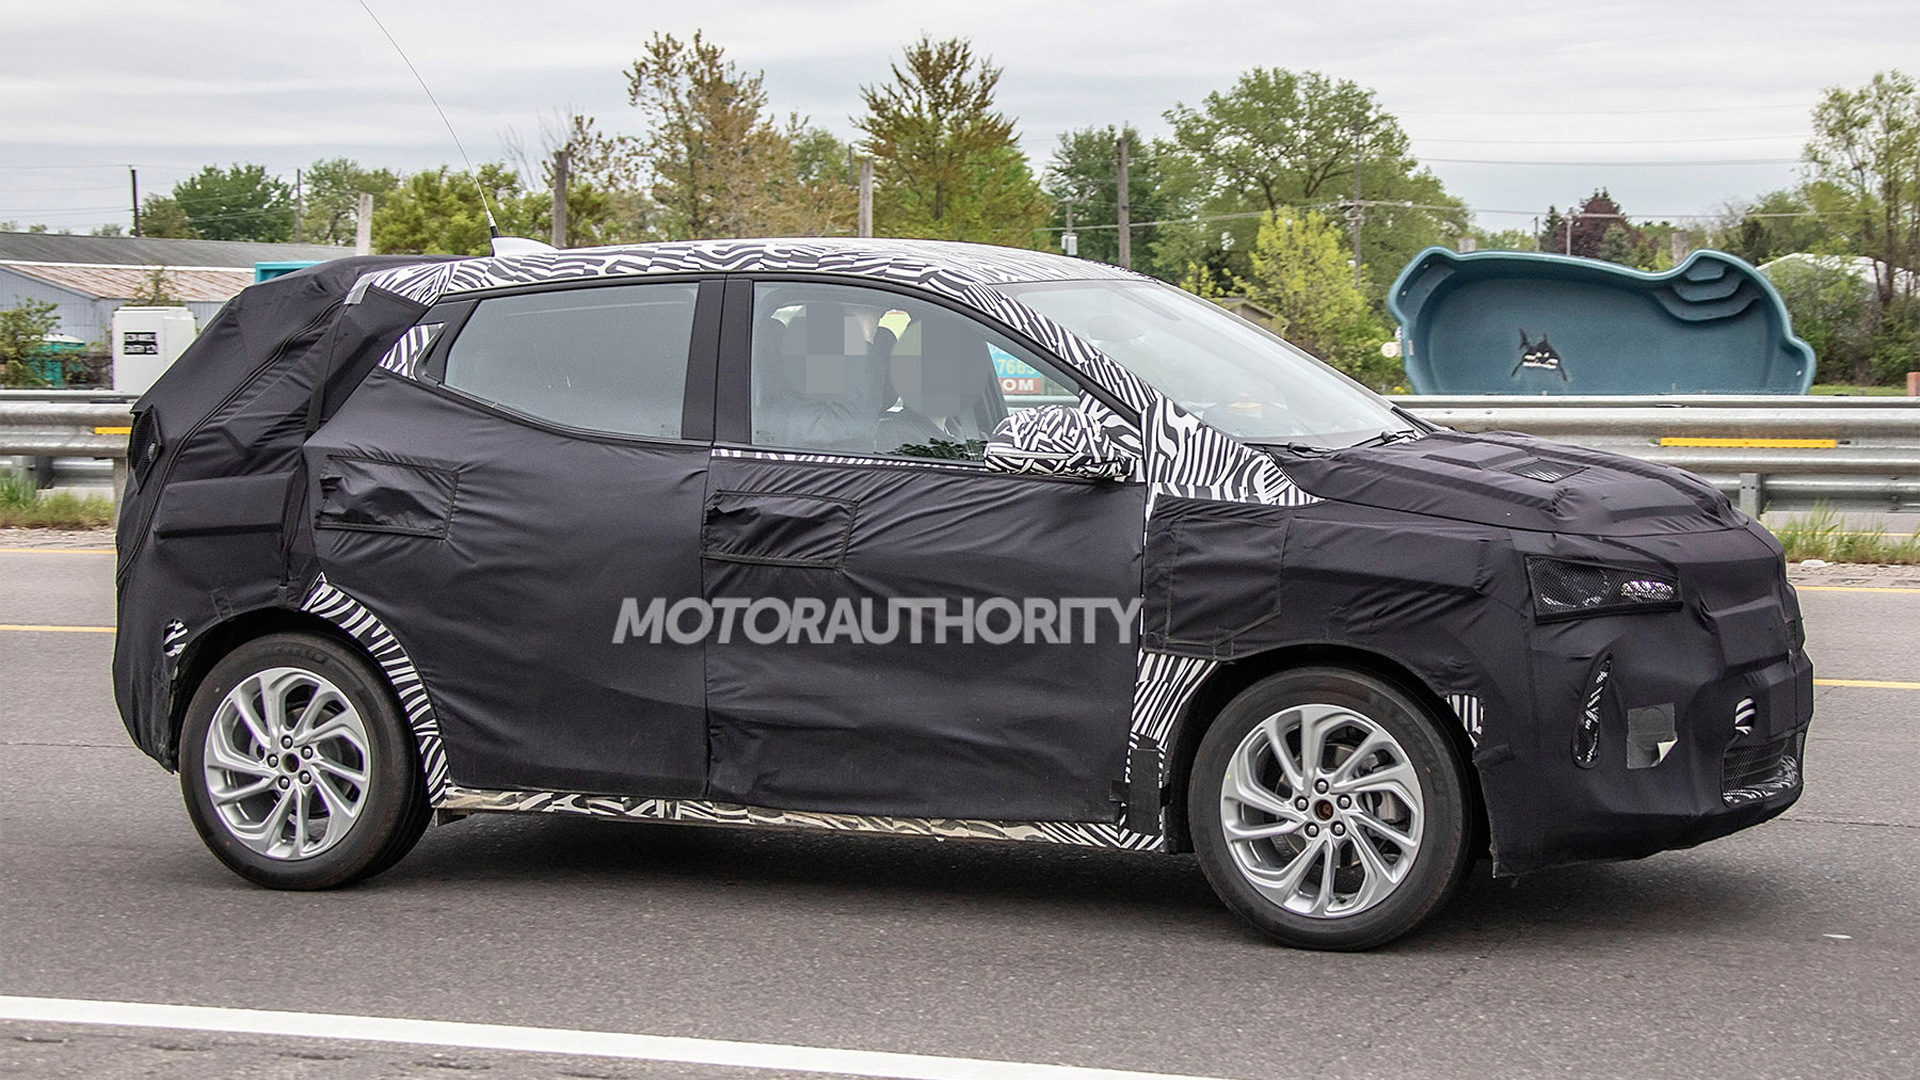 2021 Chevrolet Bolt EV-based crossover spy shots - Image via S. Baldauf/SB-Medien